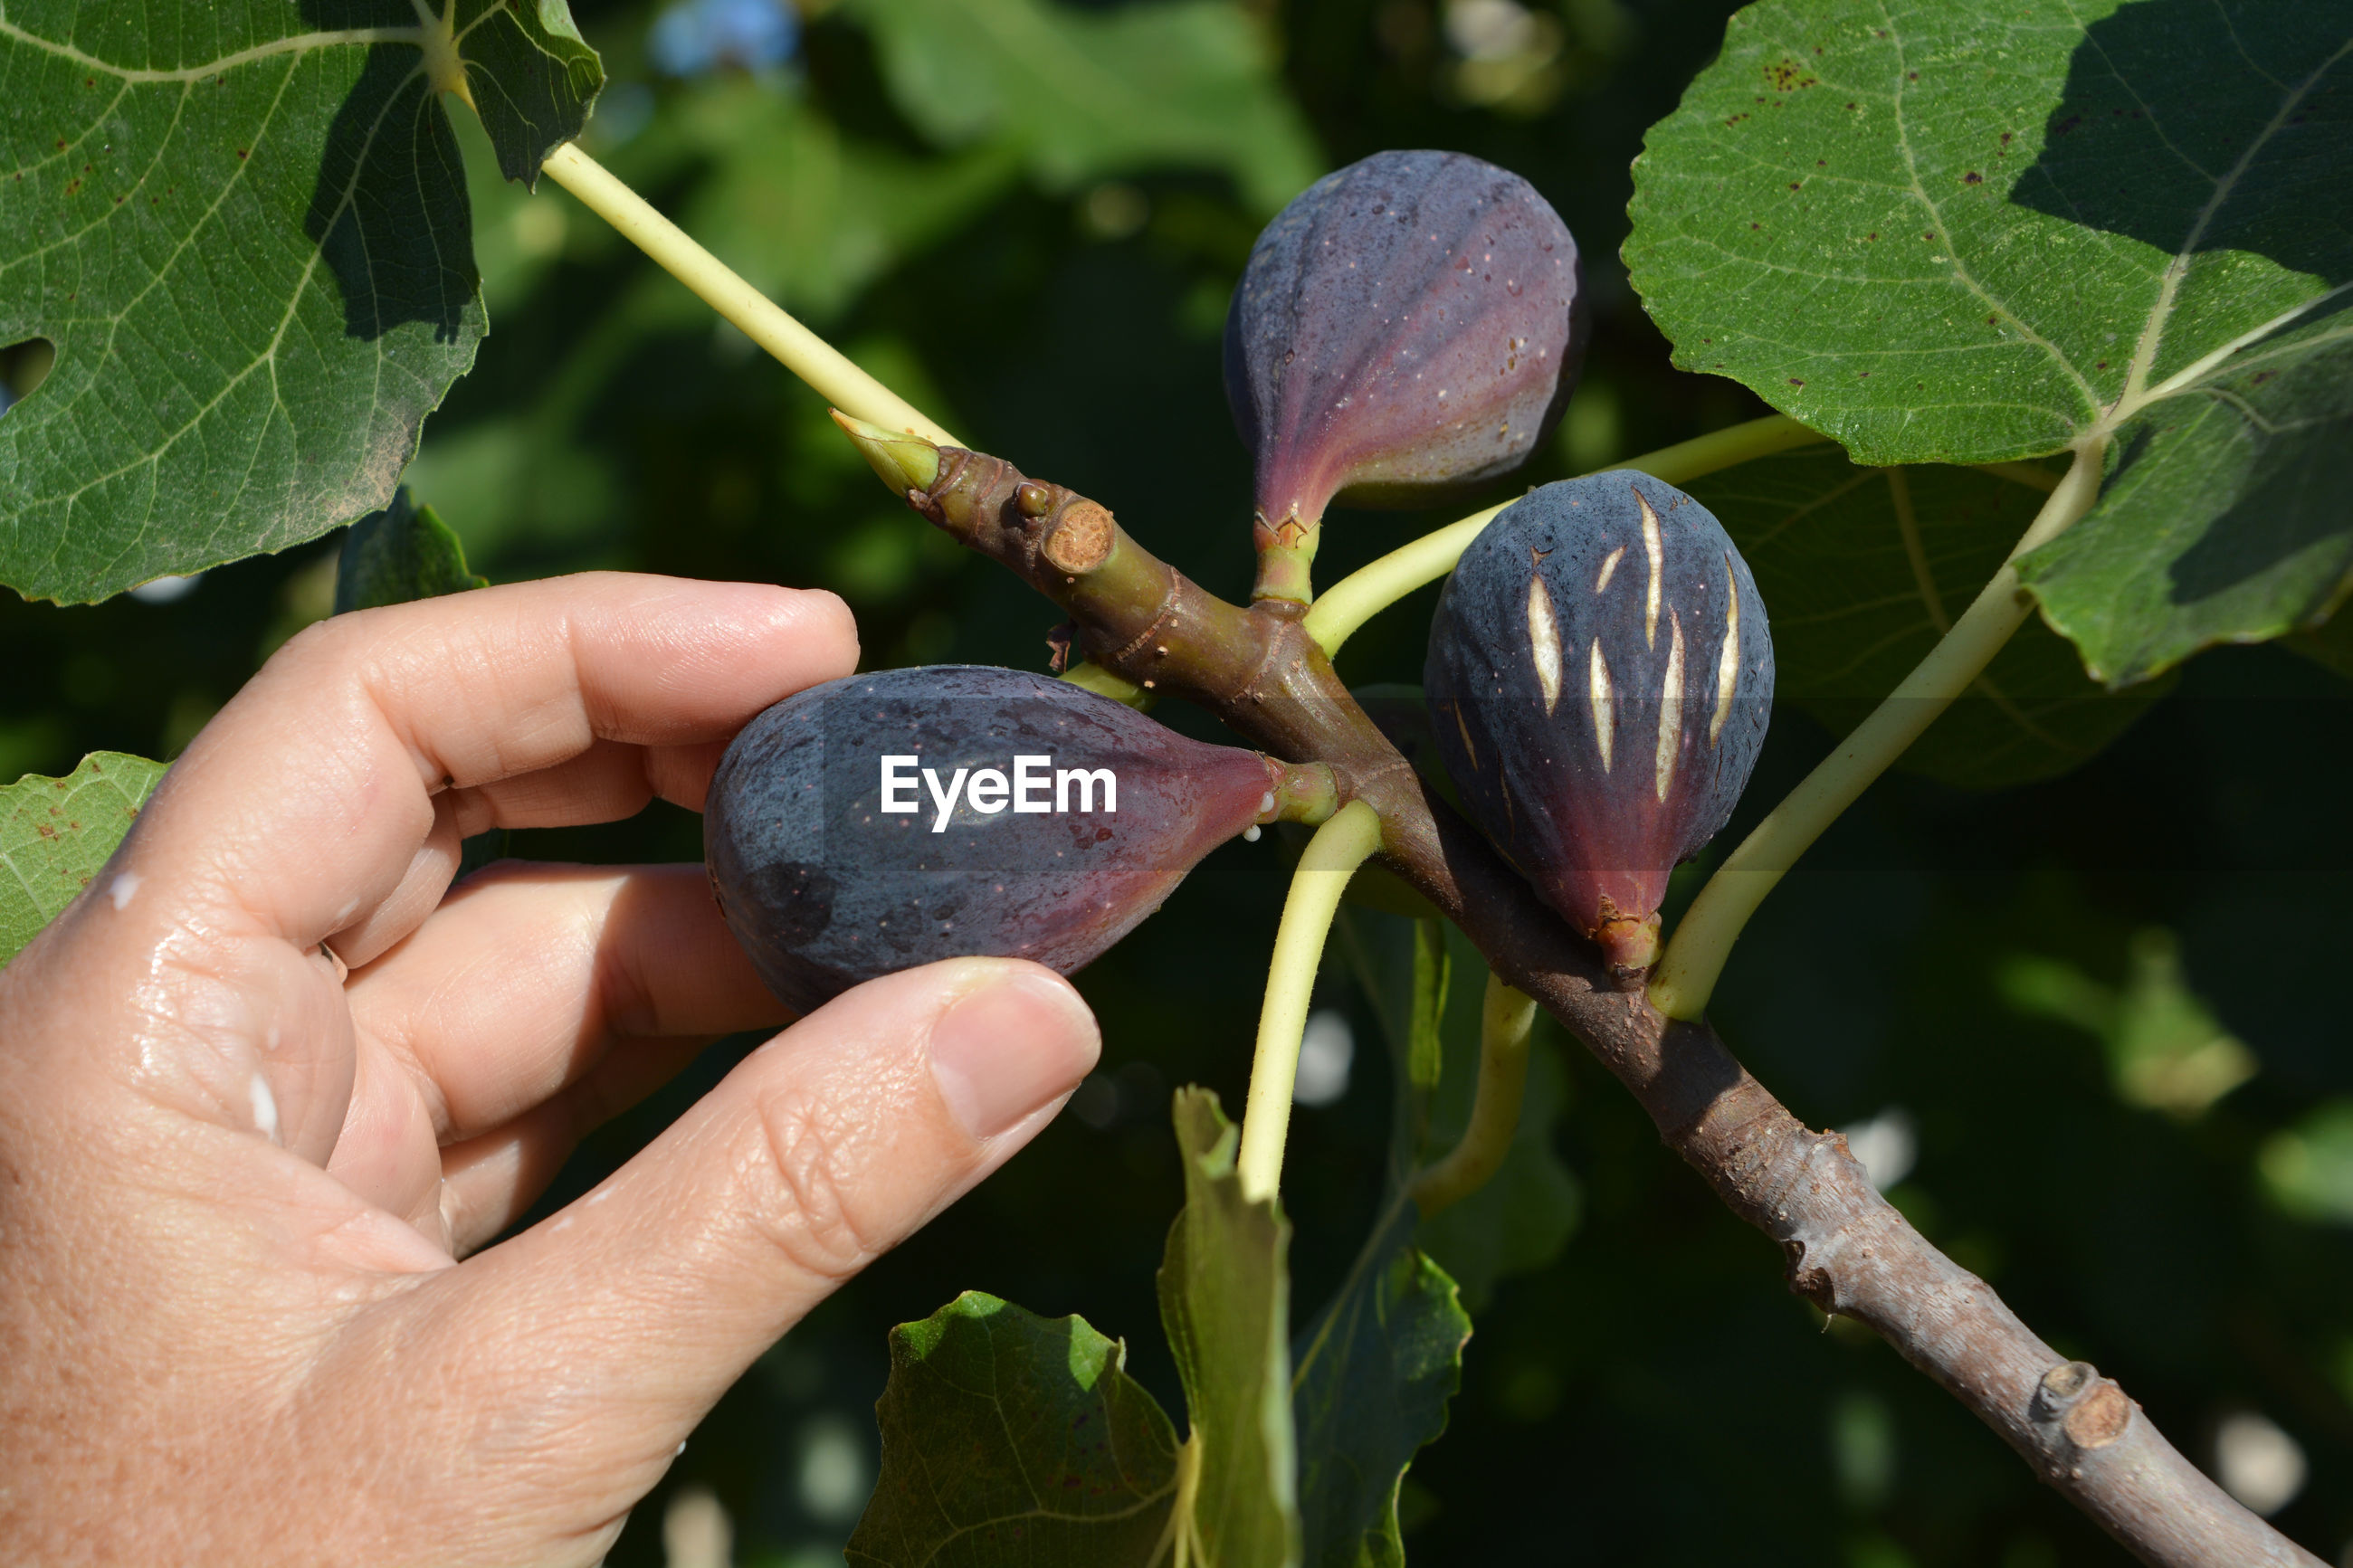 Picking organic ripe purple figs off the tree in summer